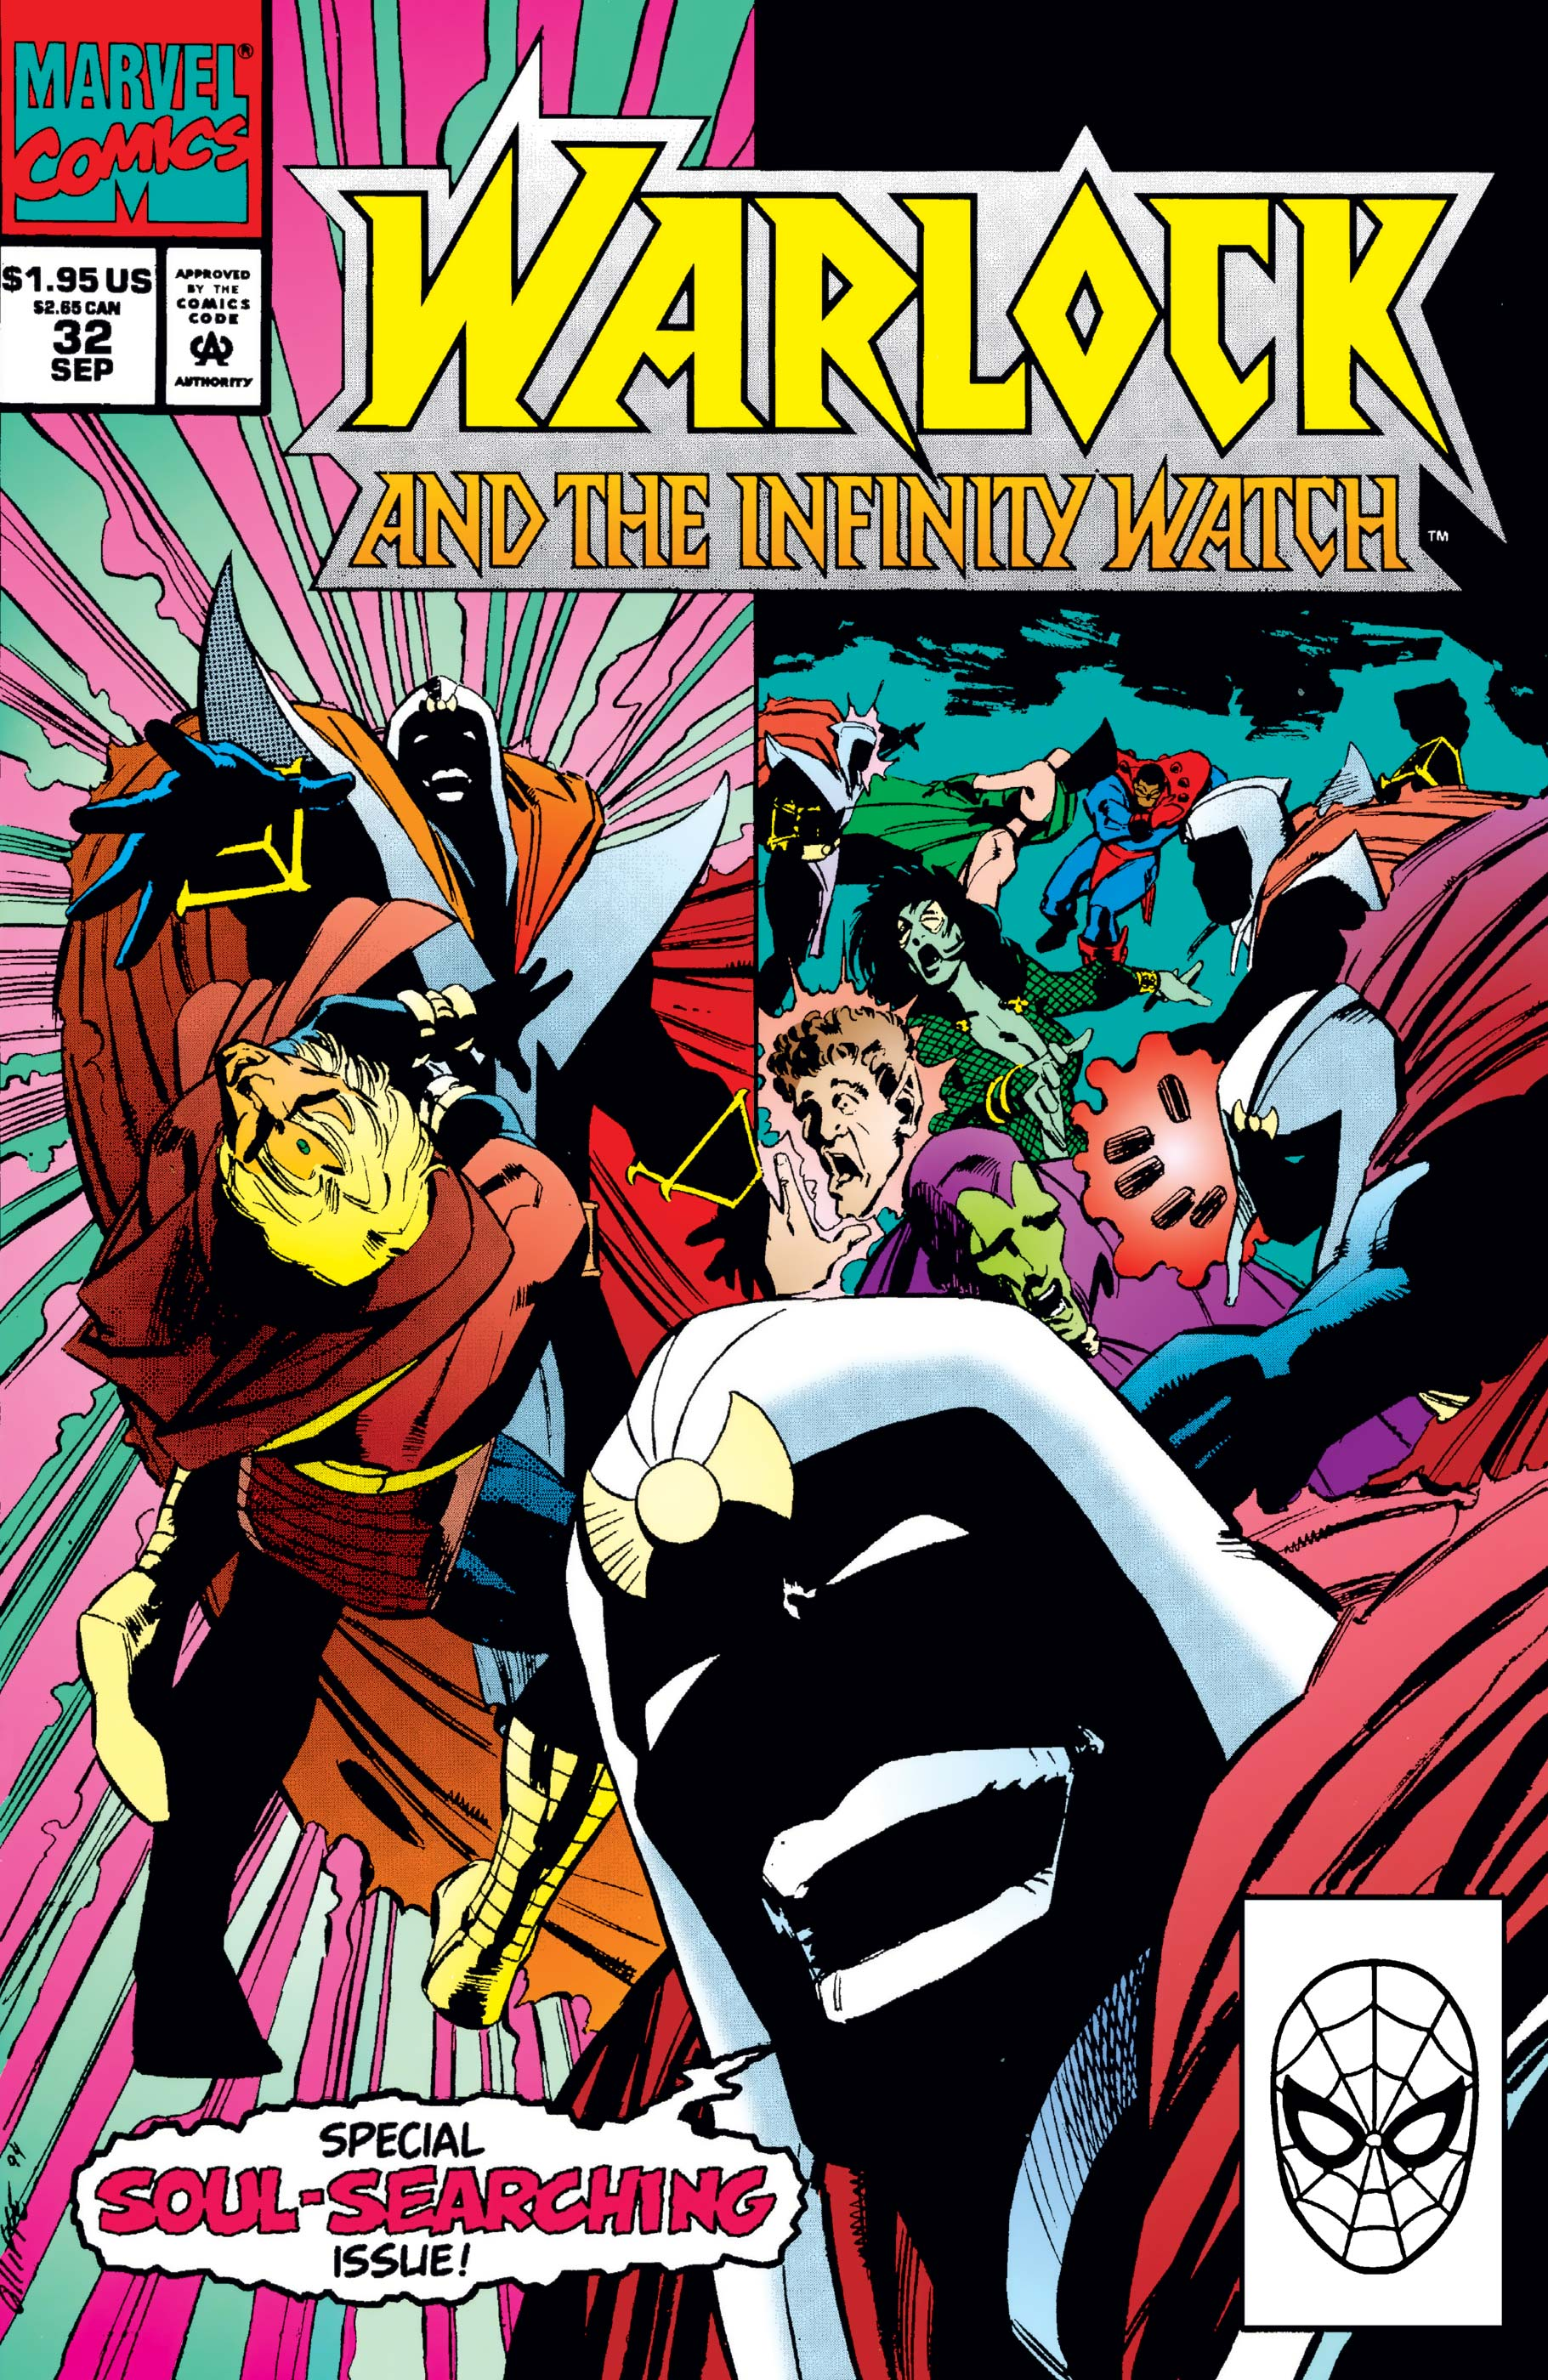 Warlock and the Infinity Watch (1992) #32